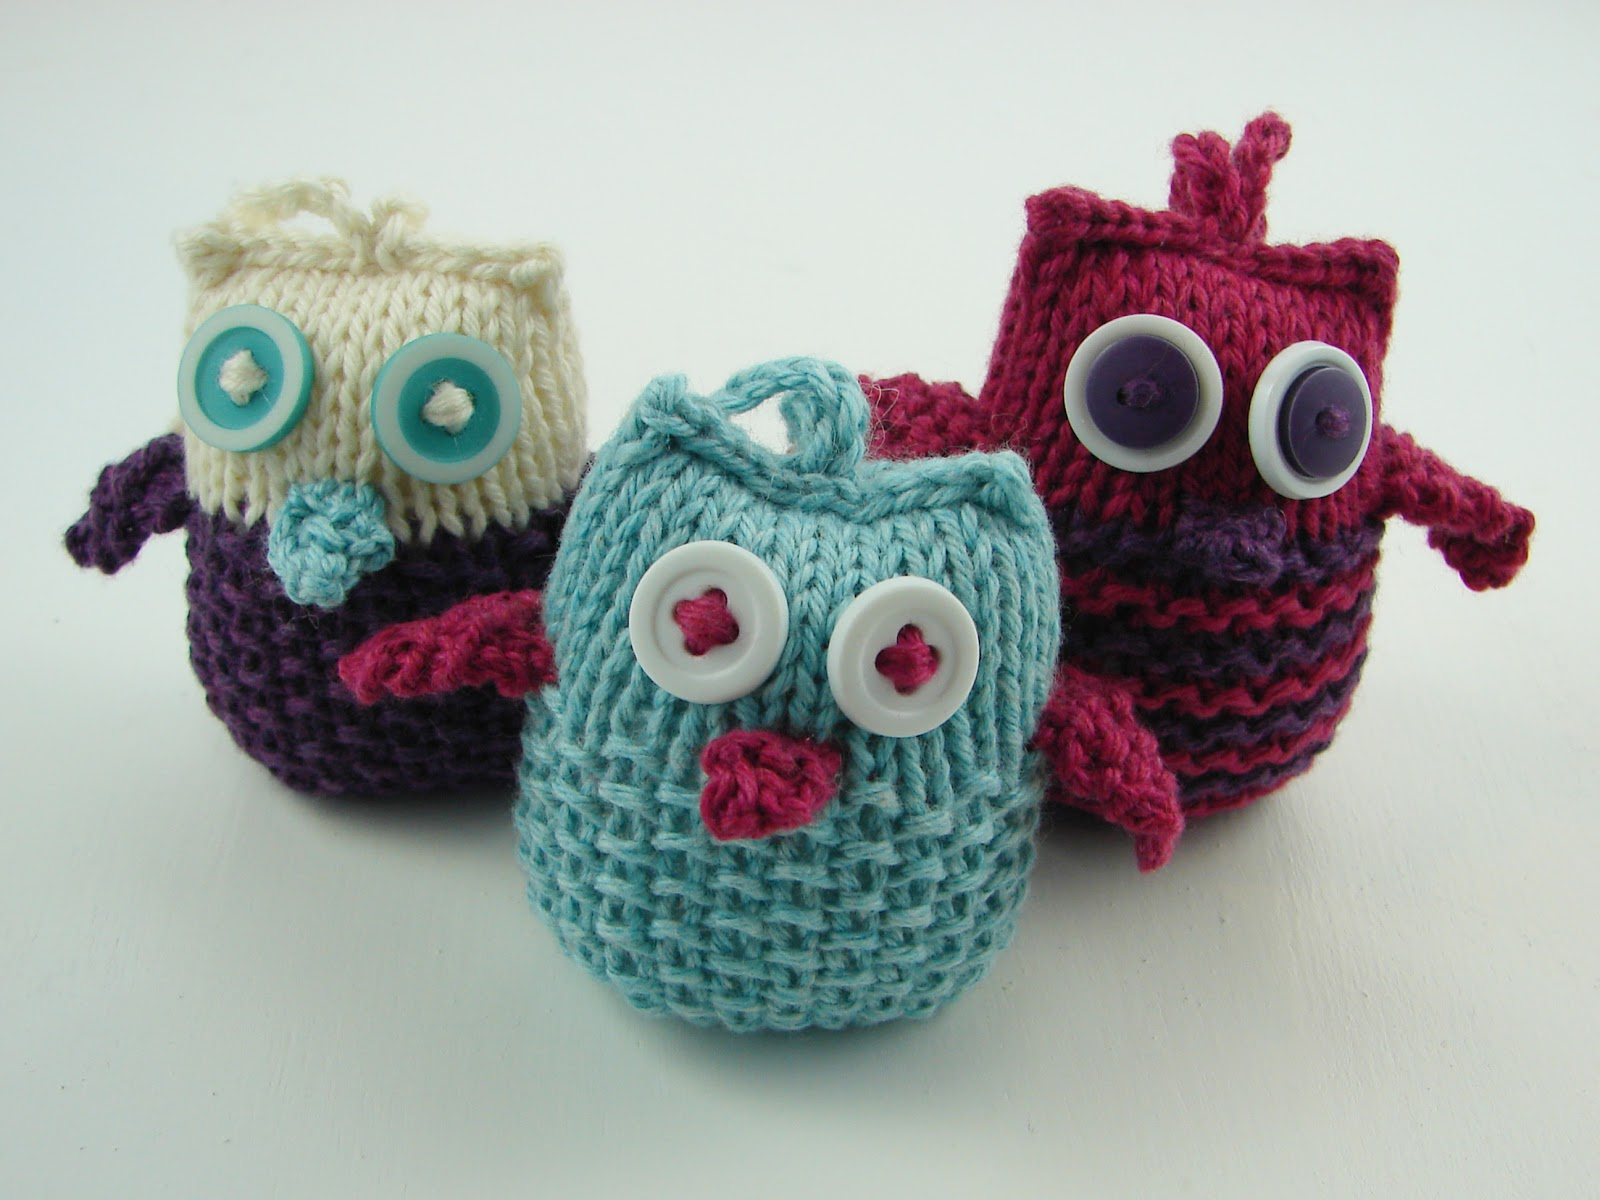 Owl Knitting Patterns Free : Dagens julestrikk: Owl Ornaments Strikkeoppskrift.com